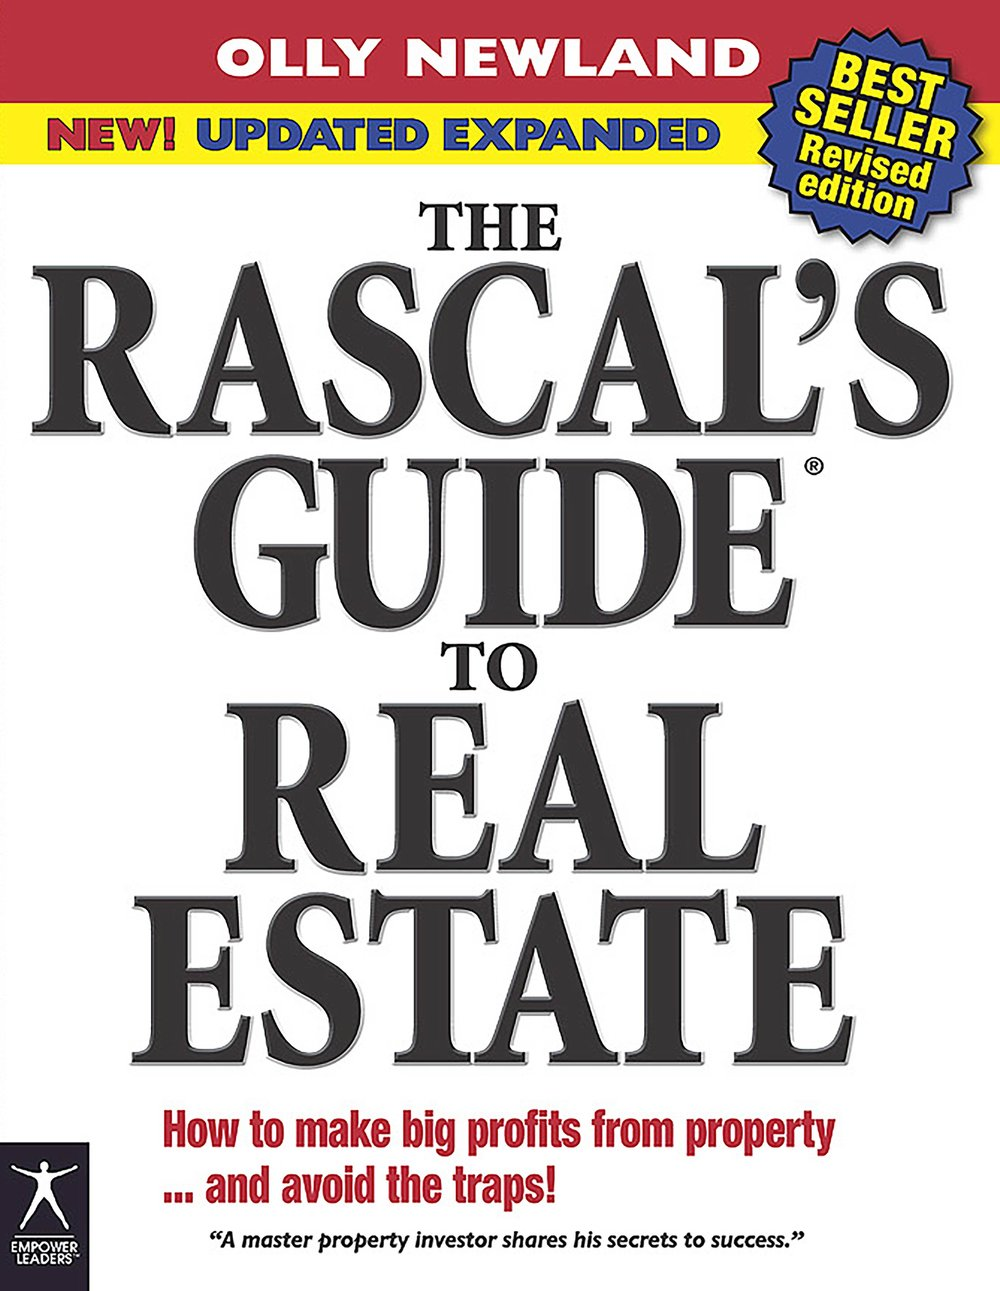 TheRascalsGuidetoRealEstate.jpg